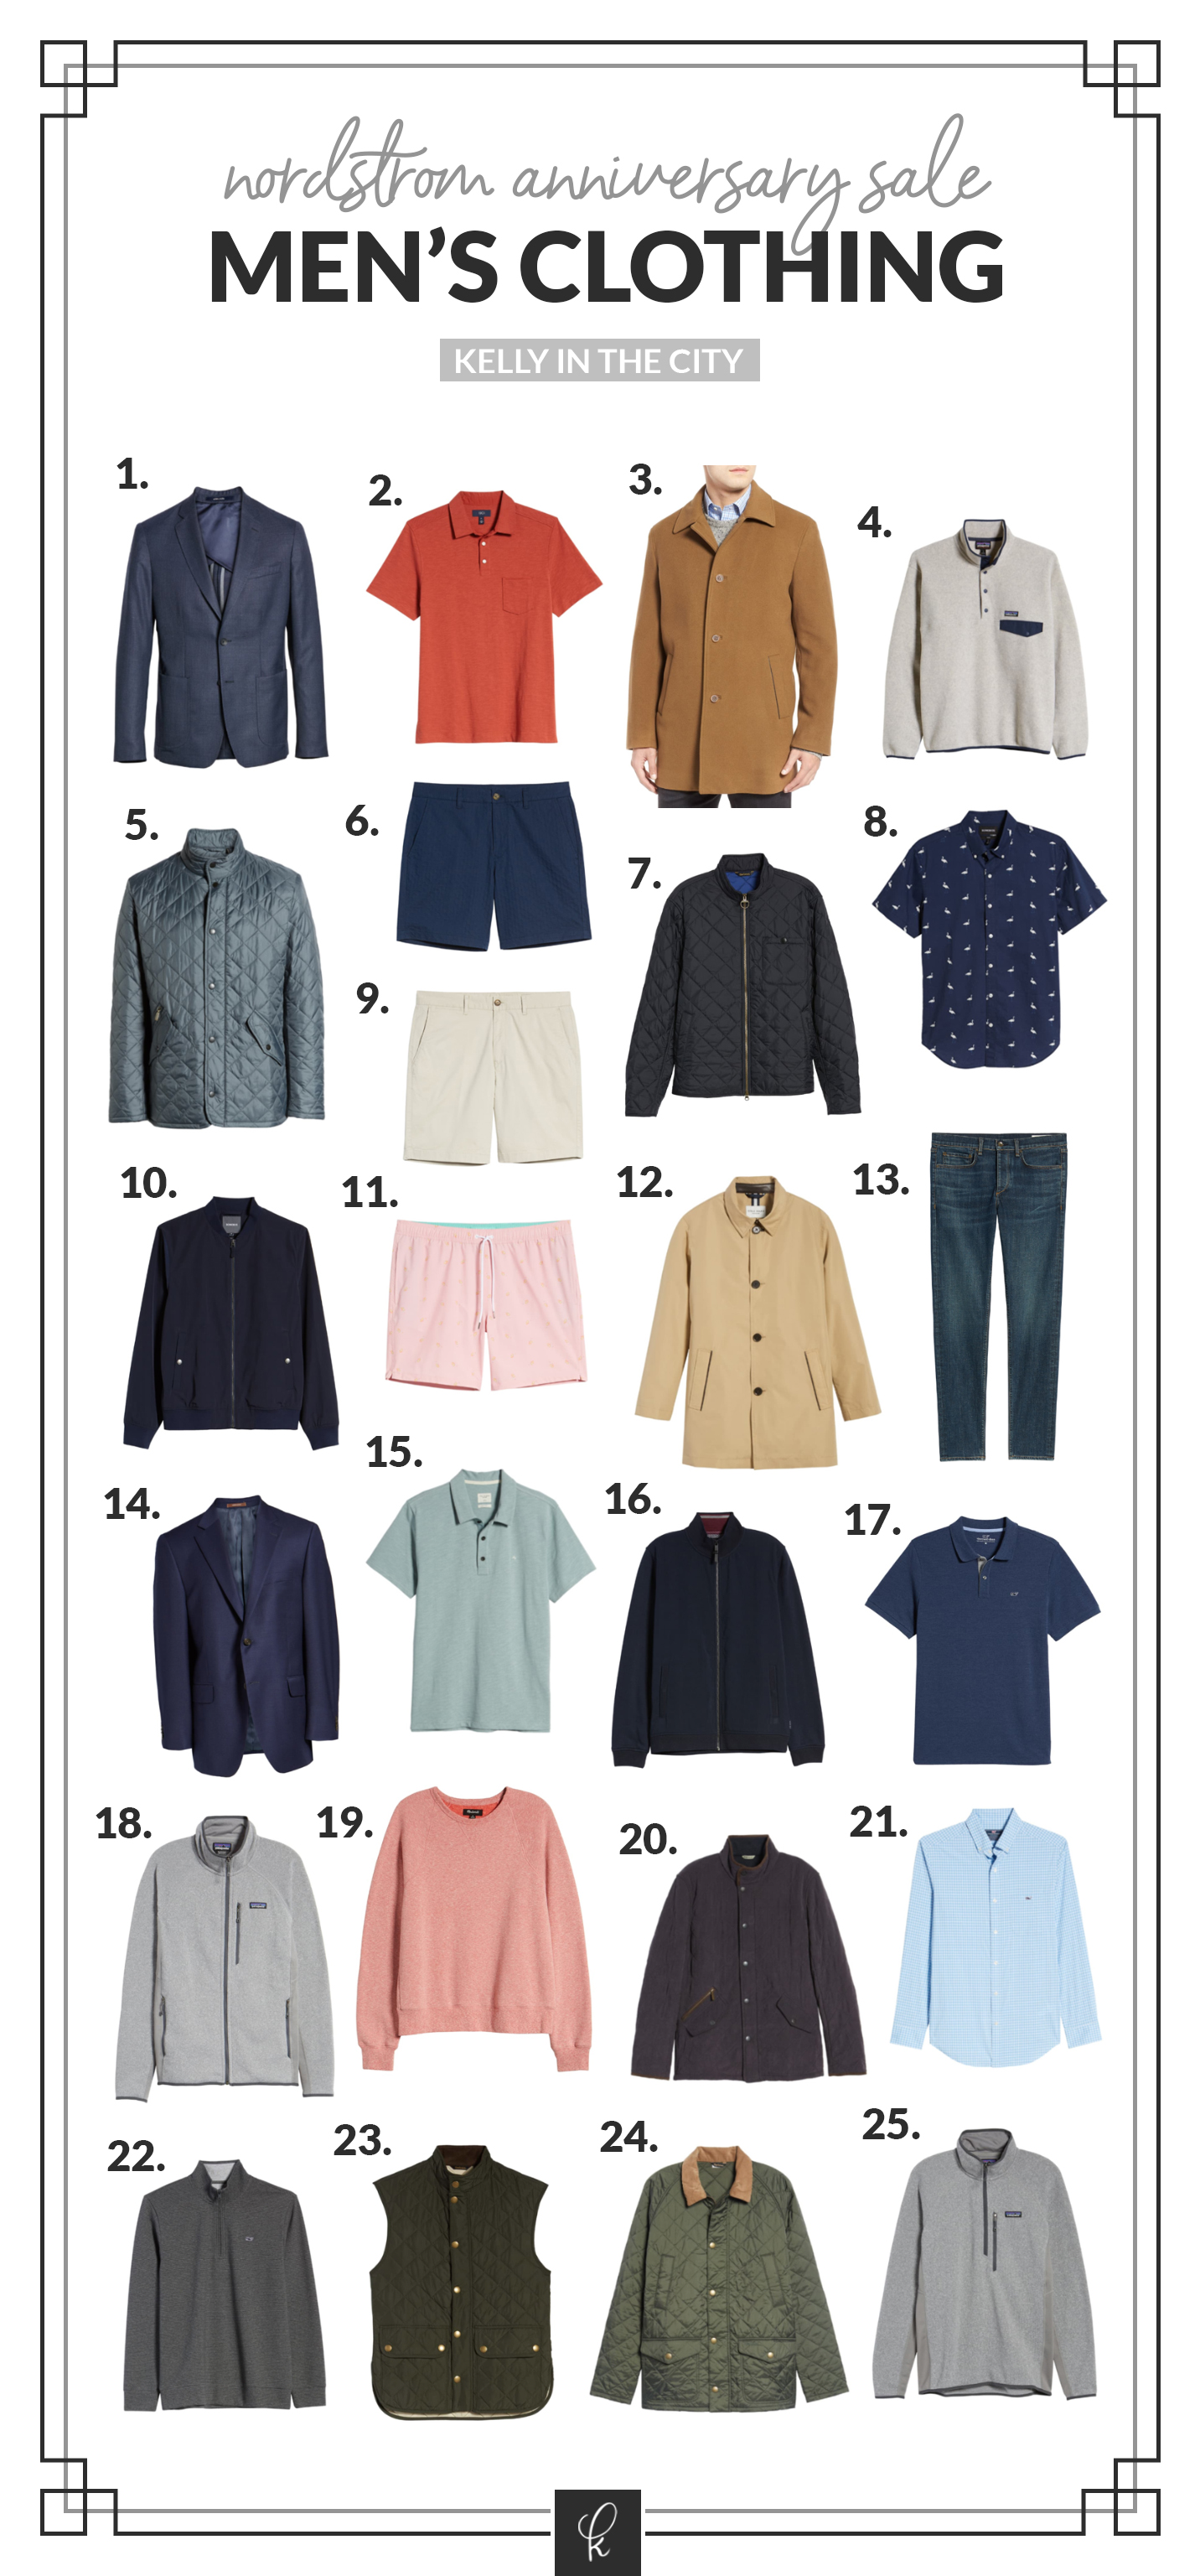 men's clothing nsale